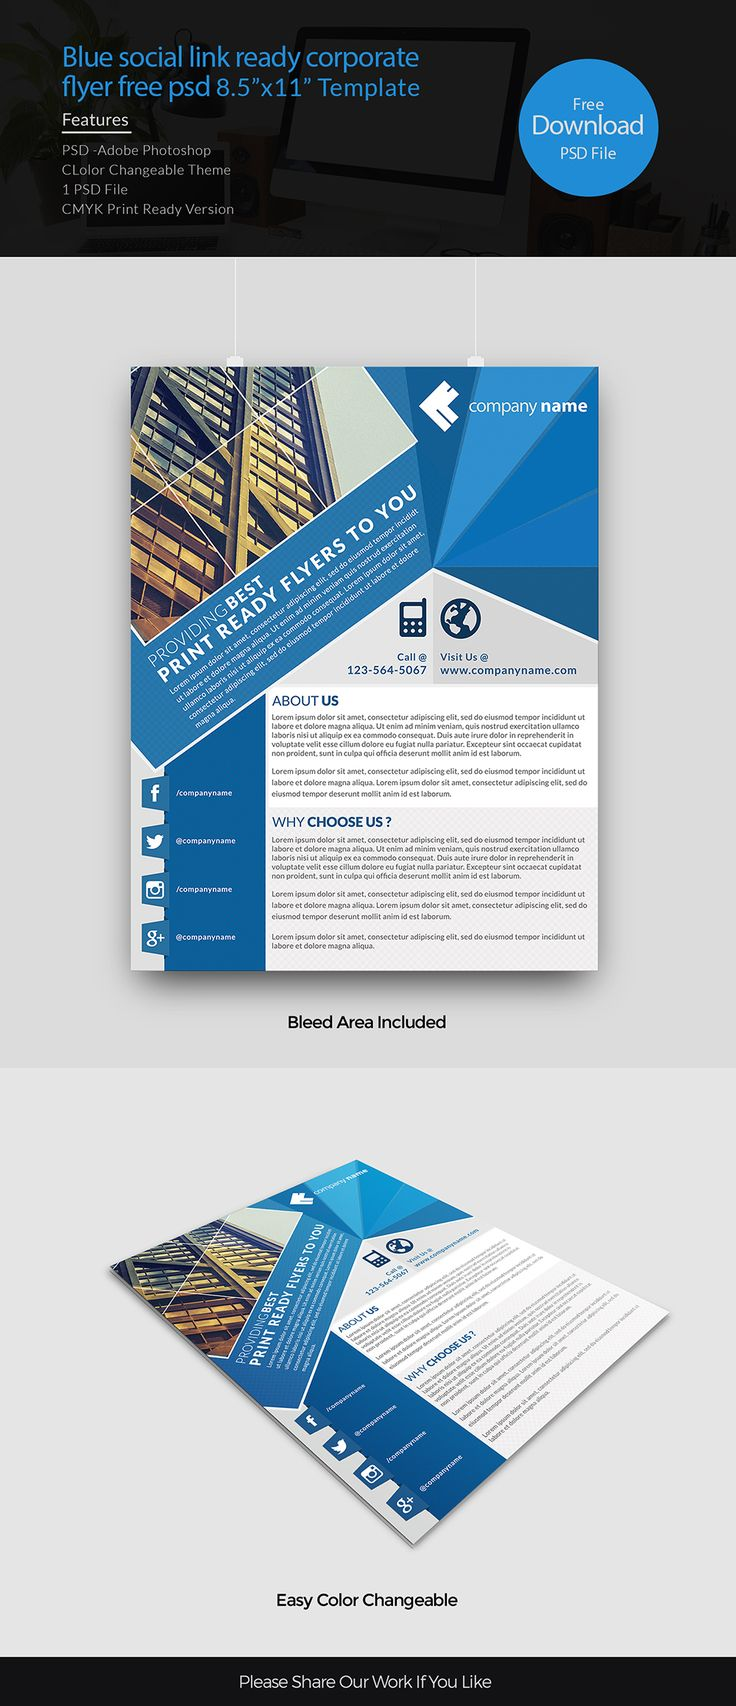 blue social link ready corporate flyer free psd